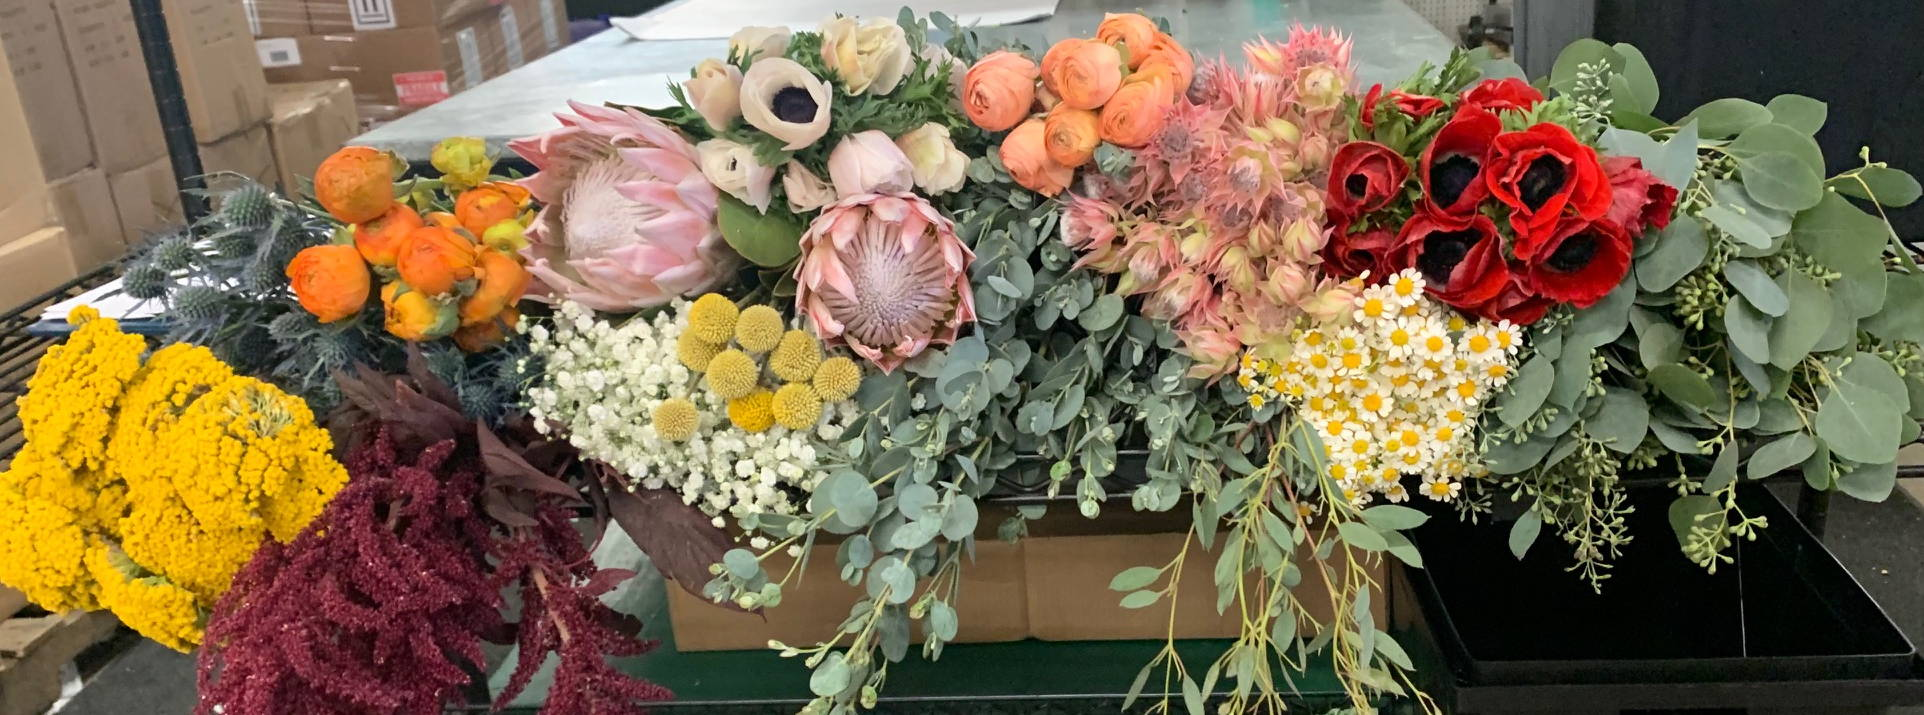 Billy Balls, king protea, white and red anemones, eucalyptus, yarrow, orange ranunculus, hanging burgundy amaranthus, feverfew